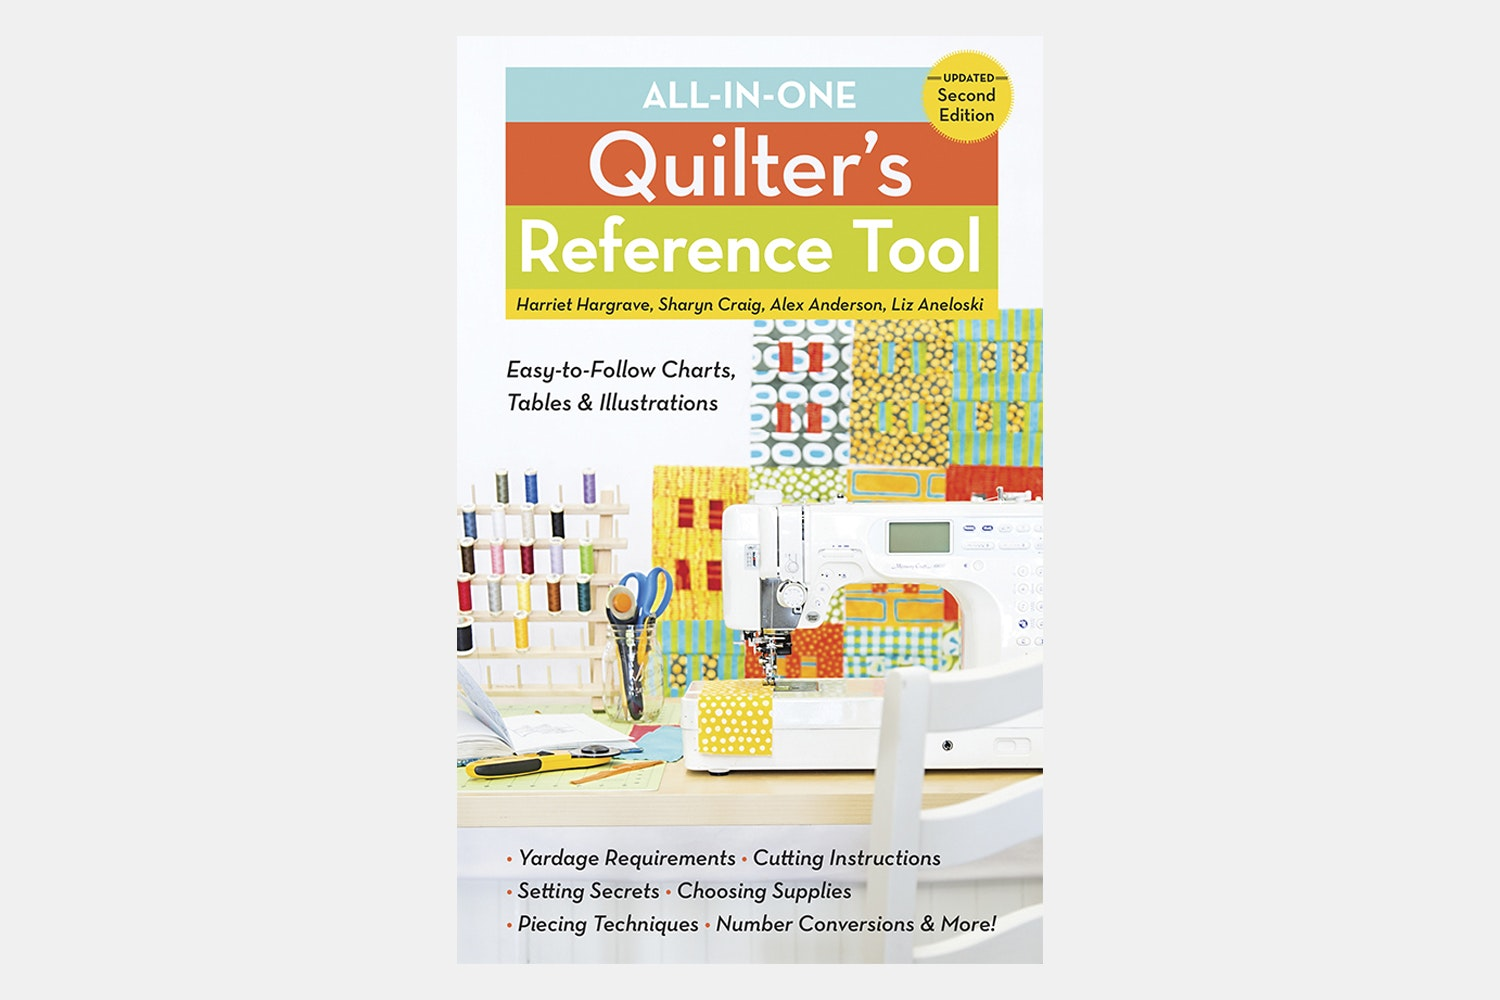 Quilter's Reference Tool Bundle